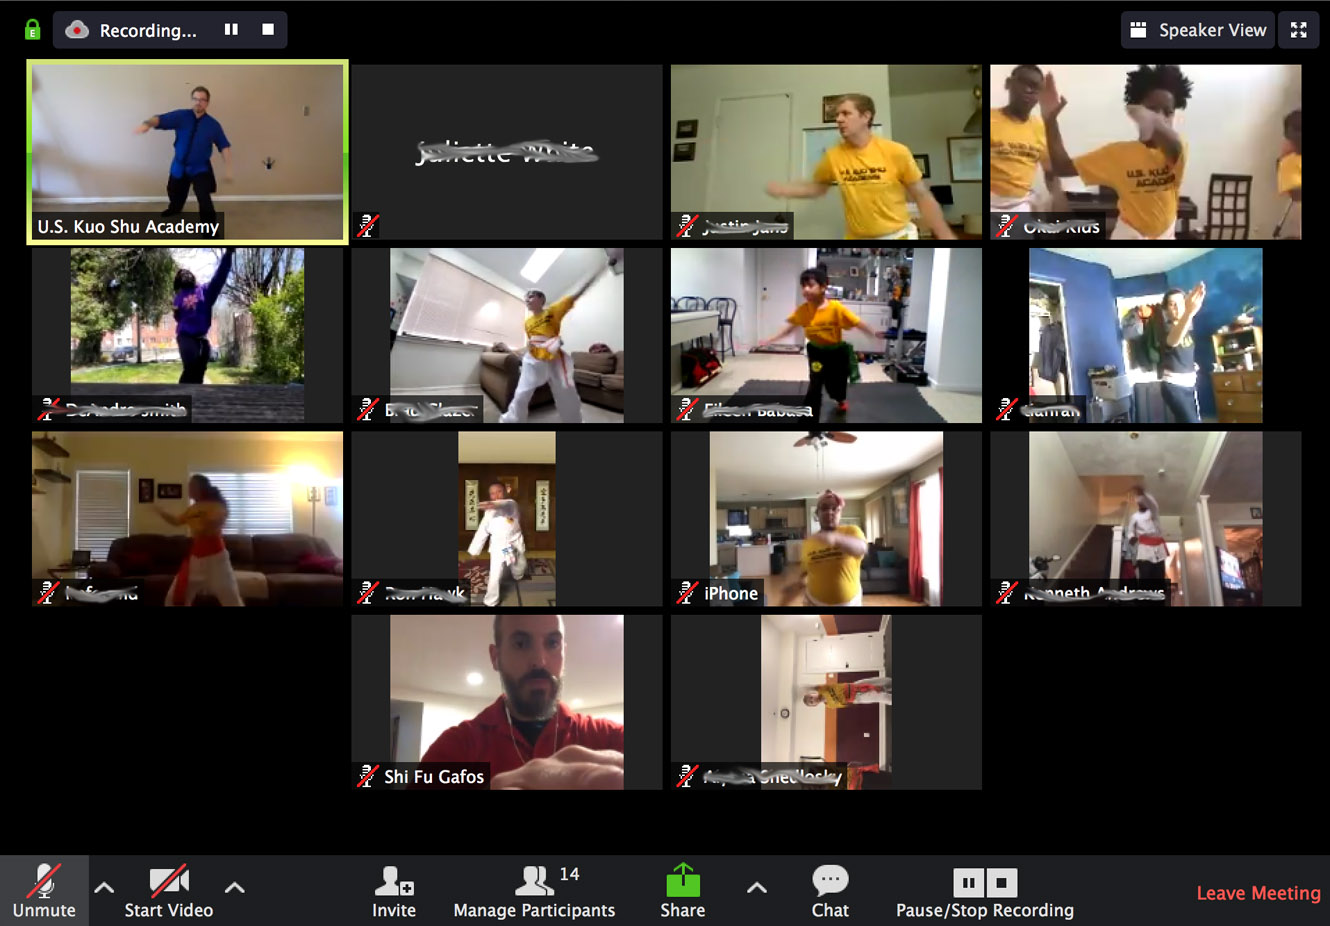 Martial Arts Goes Online: U.S. Kuo Shu Academy Offers Virtual Lessons During the Coronavirus Shutdown